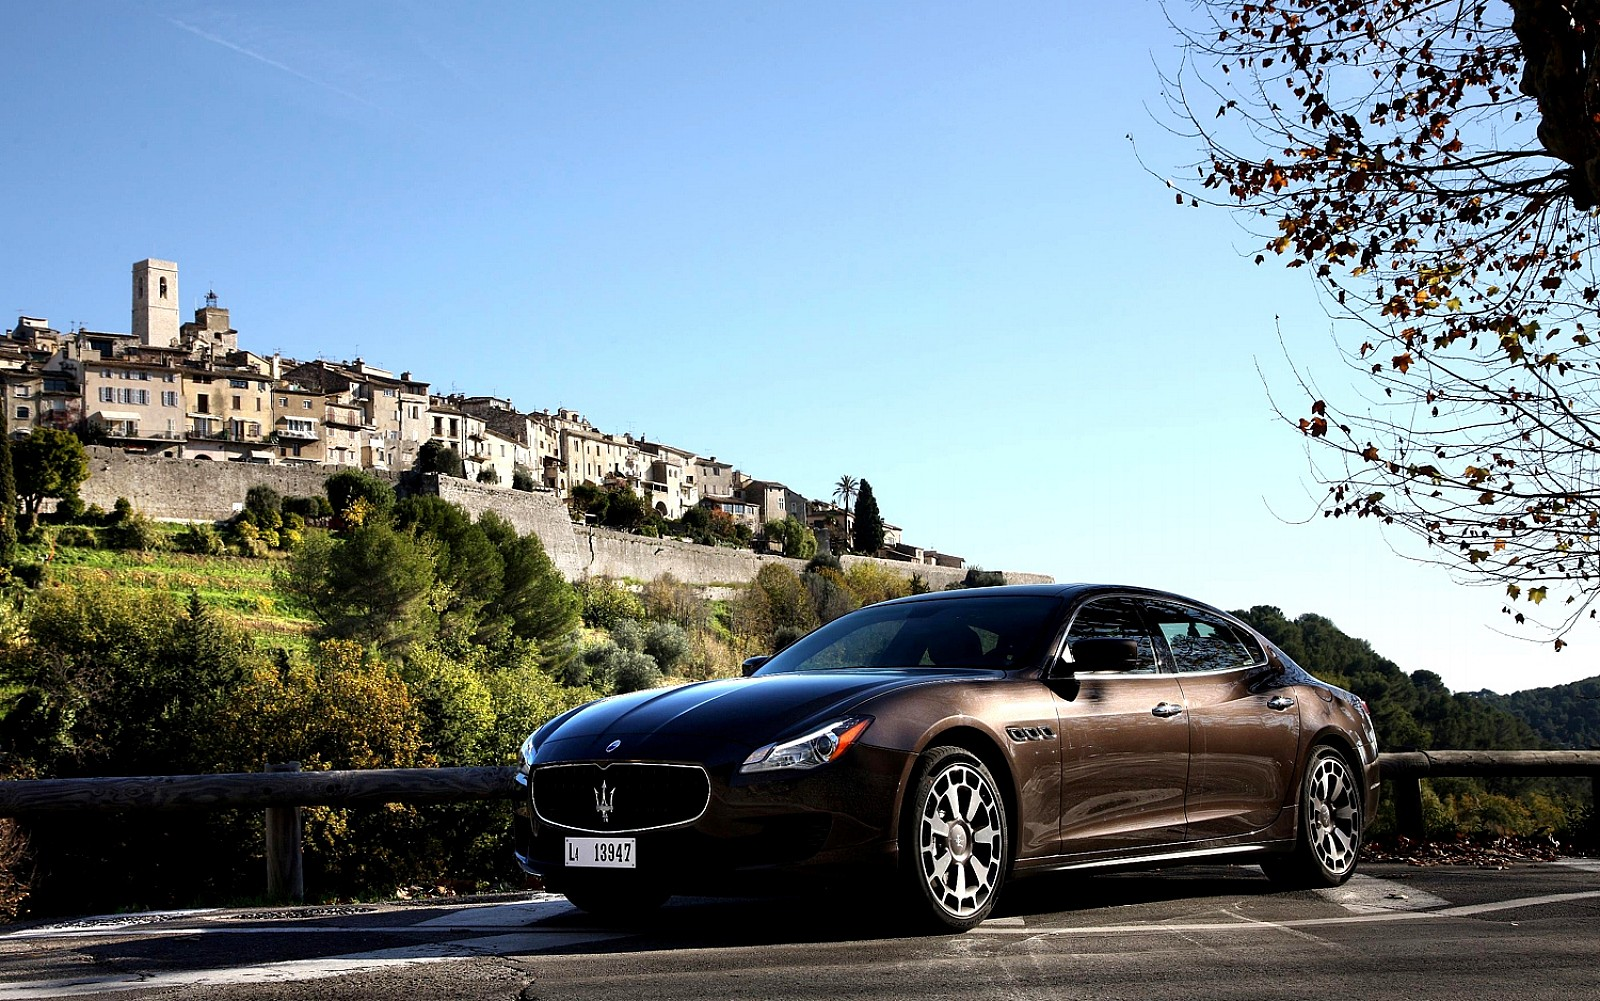 Maserati Quattroporte HD Widescreen Wallpapers Car HD Wallpapers 1600x1001